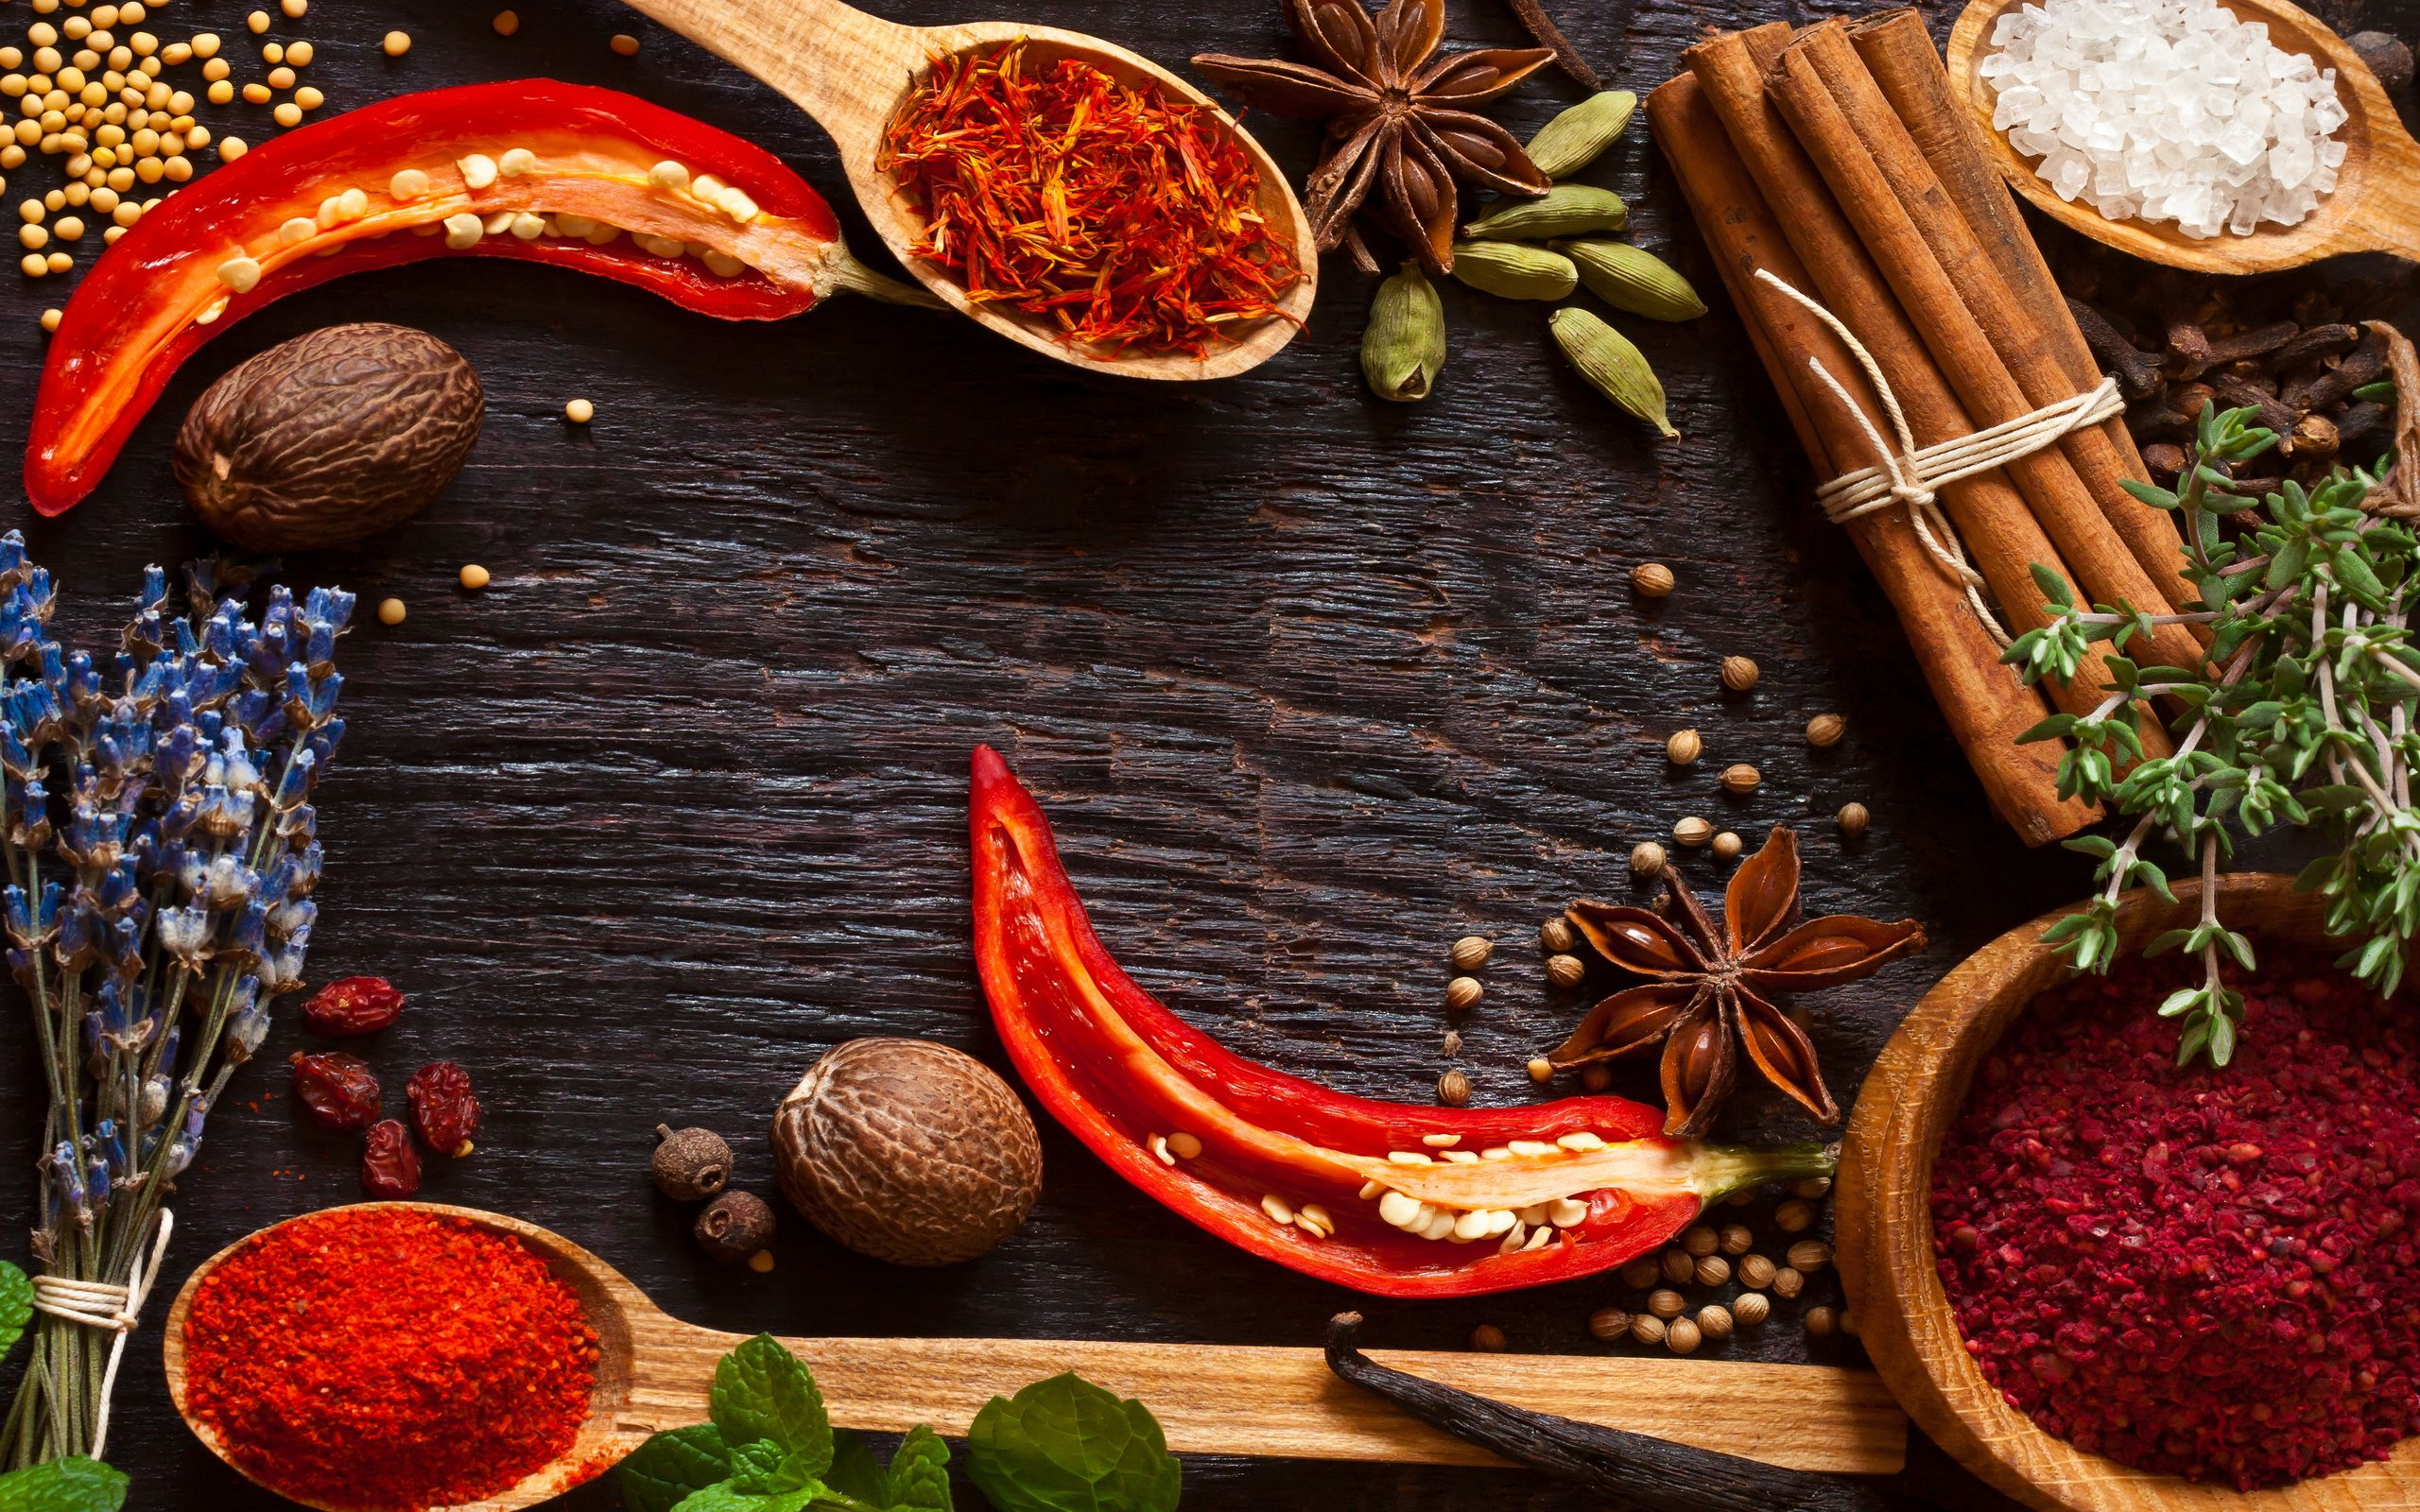 Pin By Tekla Vekua On Live Life With A Little Spice Food Spice Image World Cuisine